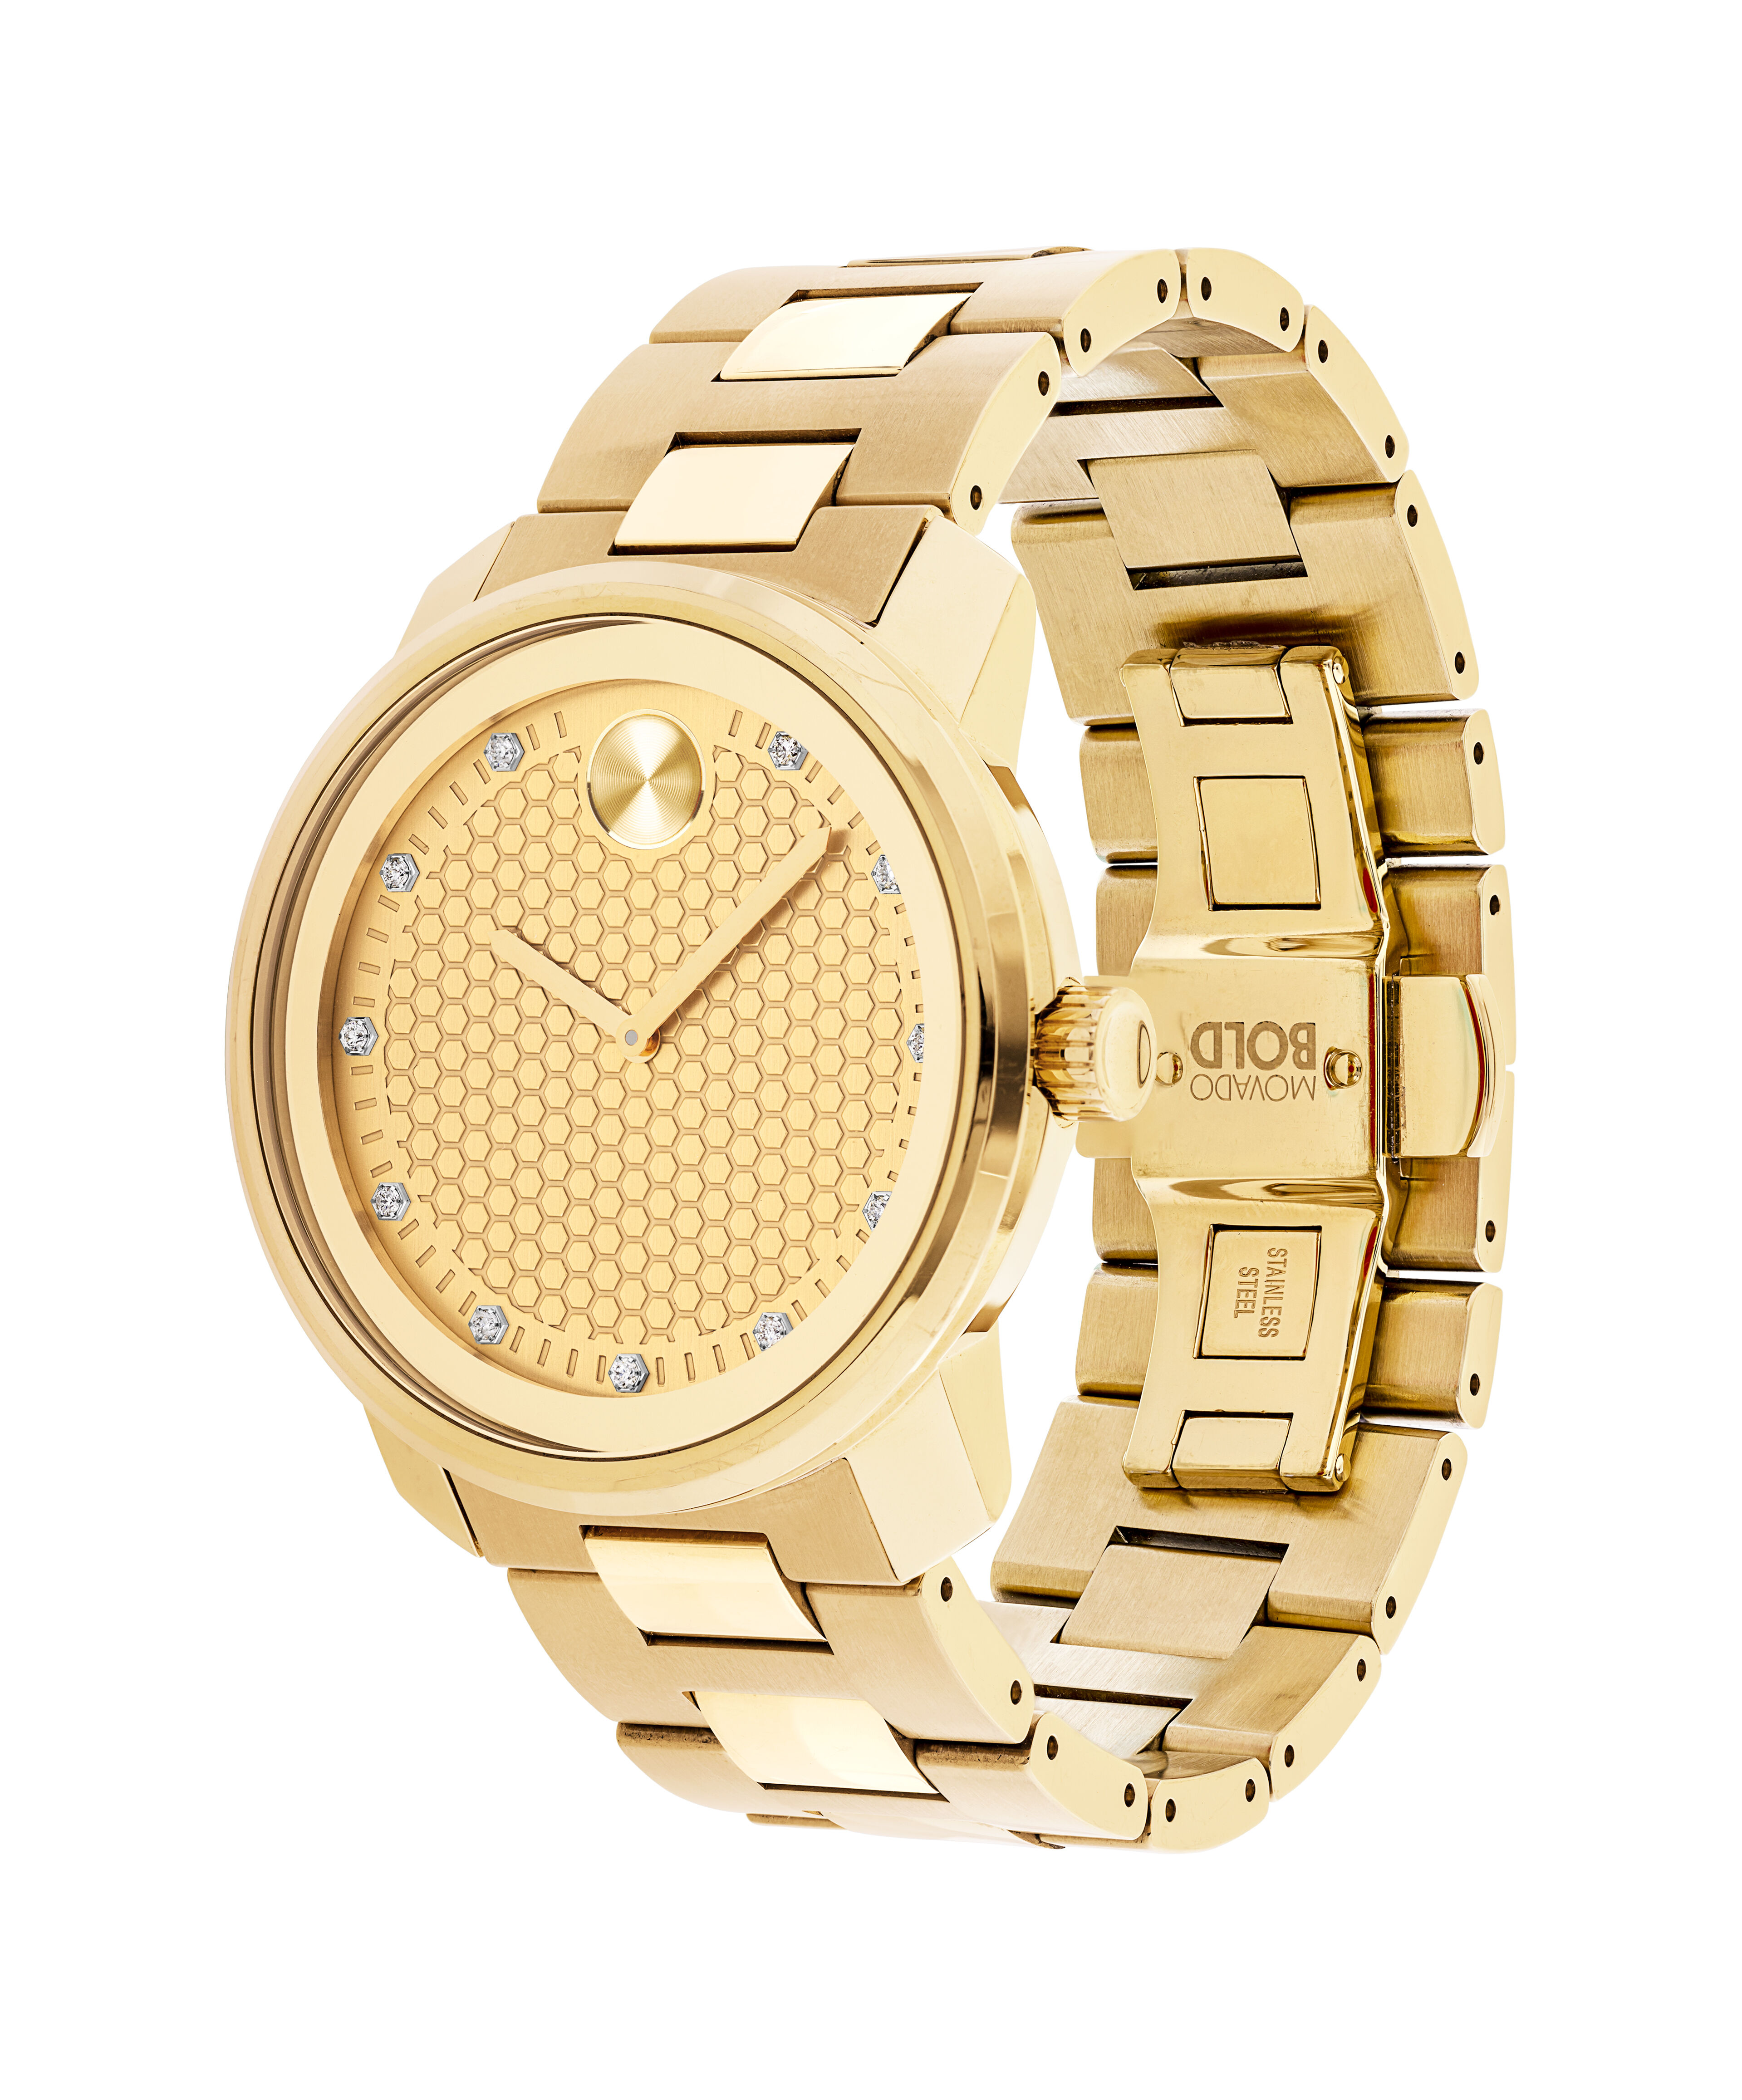 Good Sites To Buy Perfect Replica Watches